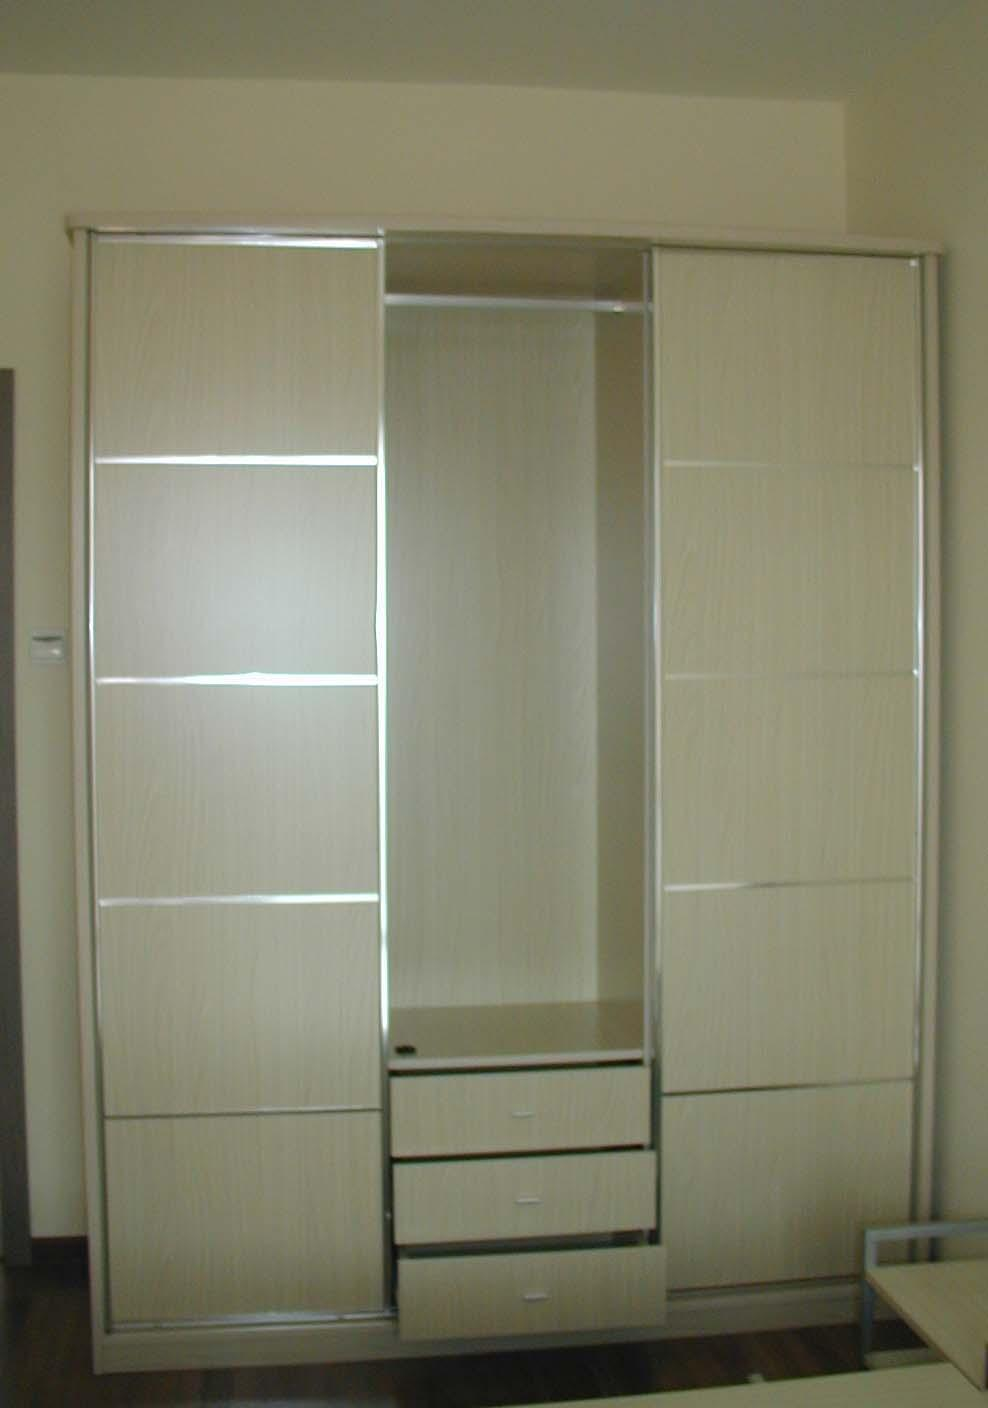 Bedroom Wardrobes Video Search Engine At